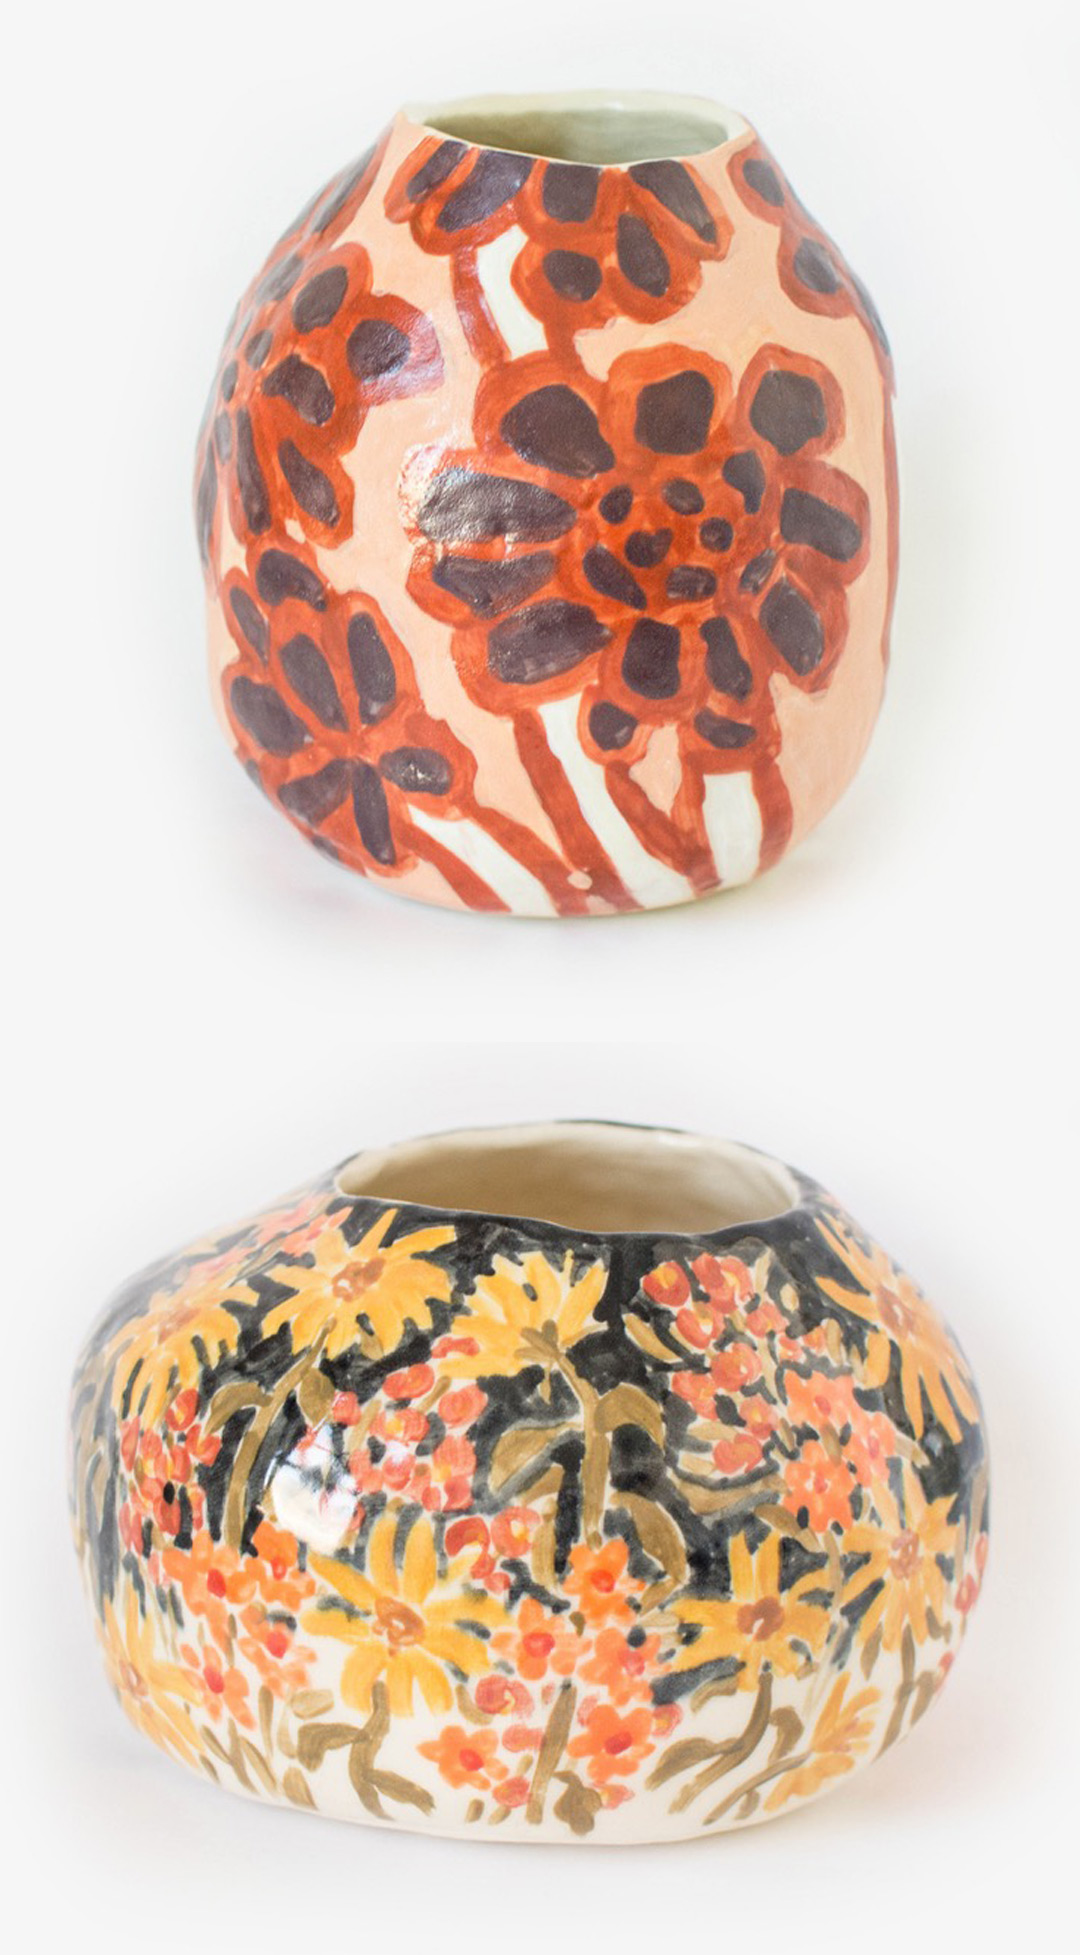 Ceramics by Leah Goren